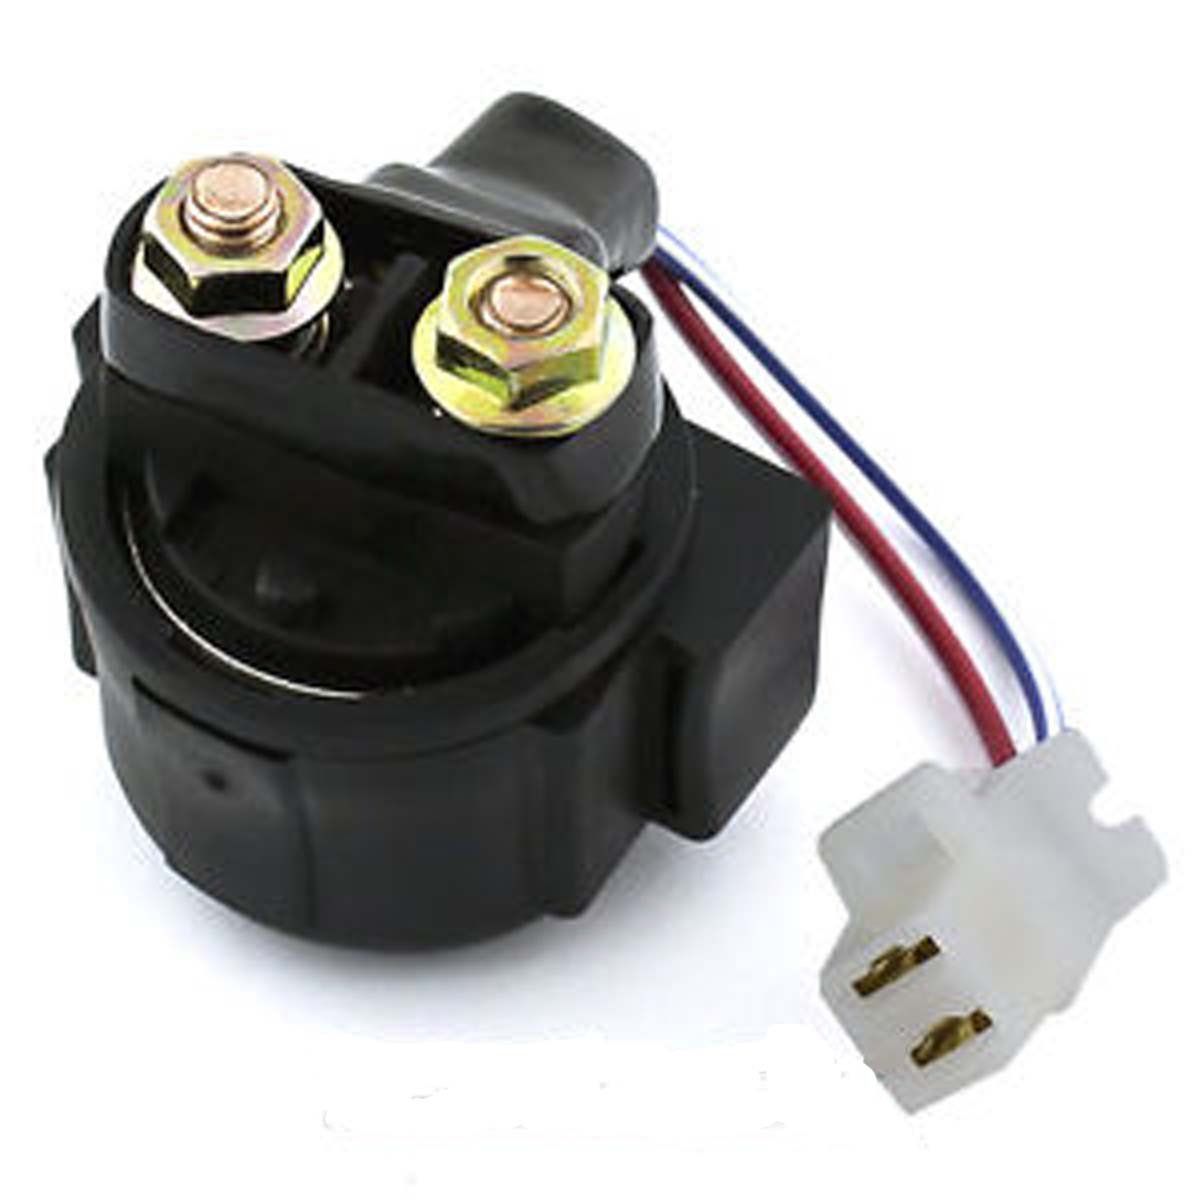 Yamaha ATV Starter Solenoid Model 50-400 / 600 Hp WSM PH375-AYA01 OEM# 3AY-81940-00-00, 3MW-81940-00-00, 3MW-81940-01-00, 4KB-81940-00-00, 4KD-81940-00-00, 5EH-81940-00-00 see description by Pwc Engine (Image #1)